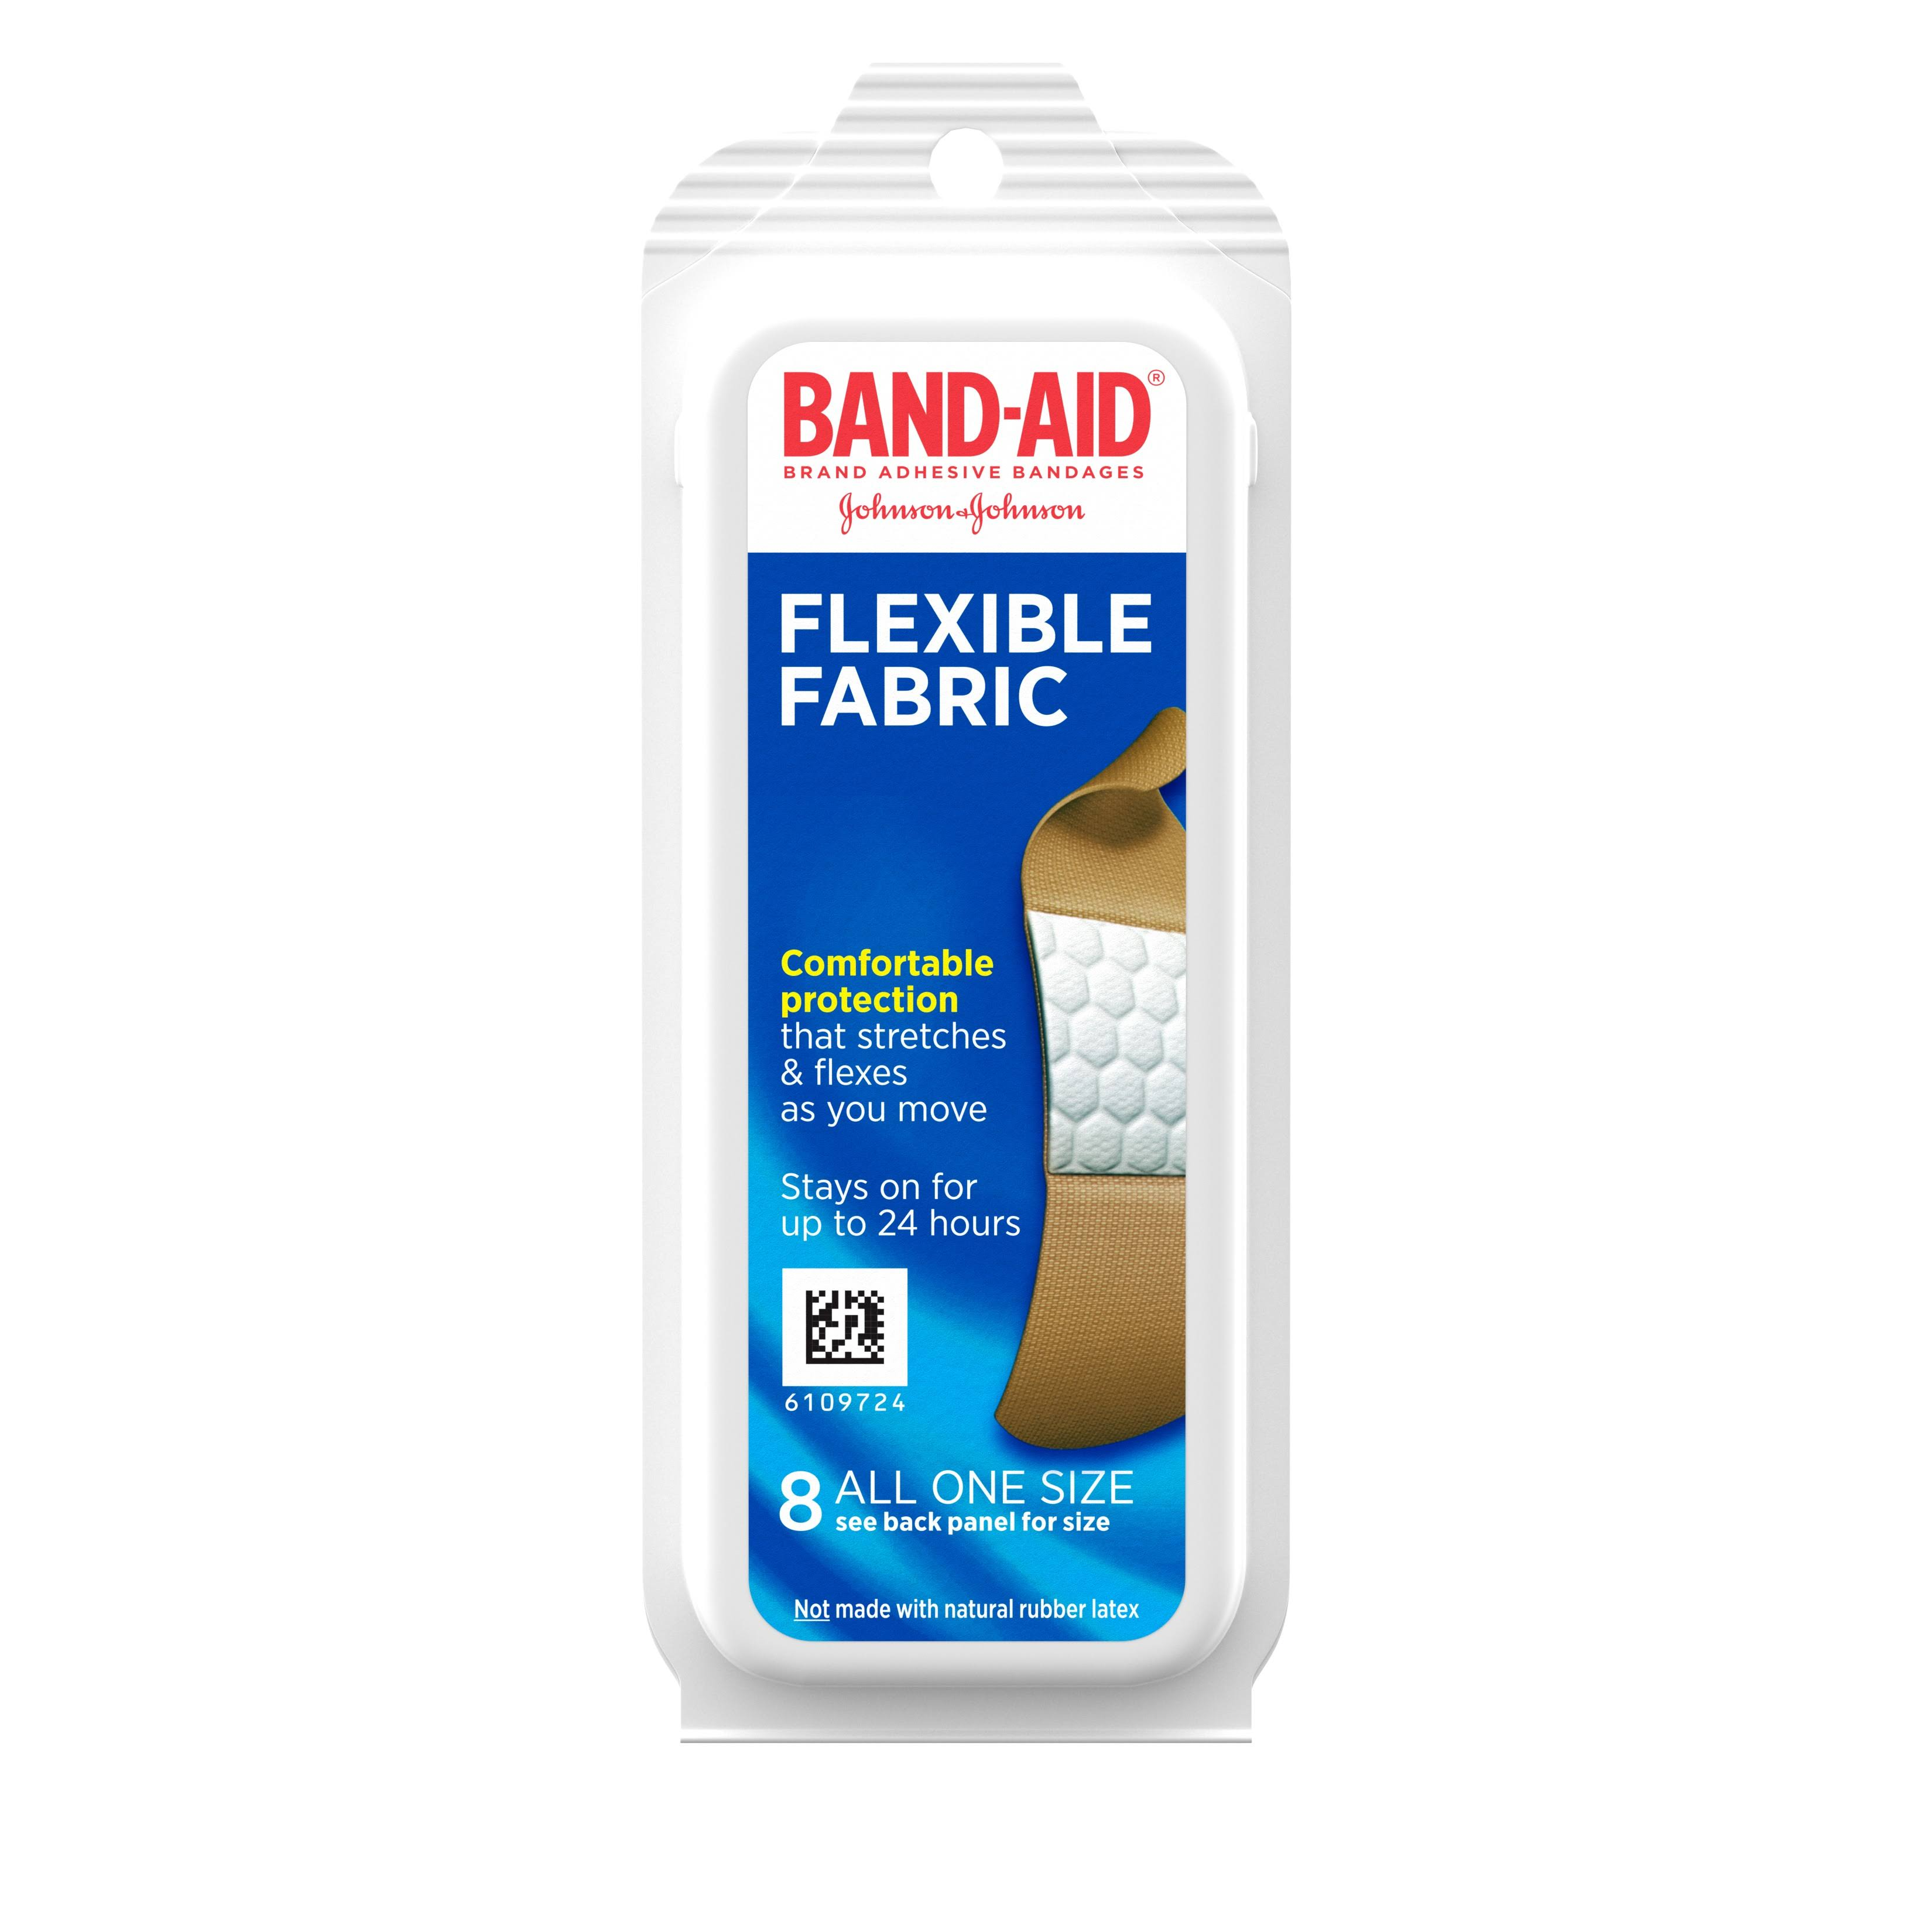 Band Aid Flexible Fabric Bandages - 8 Pieces